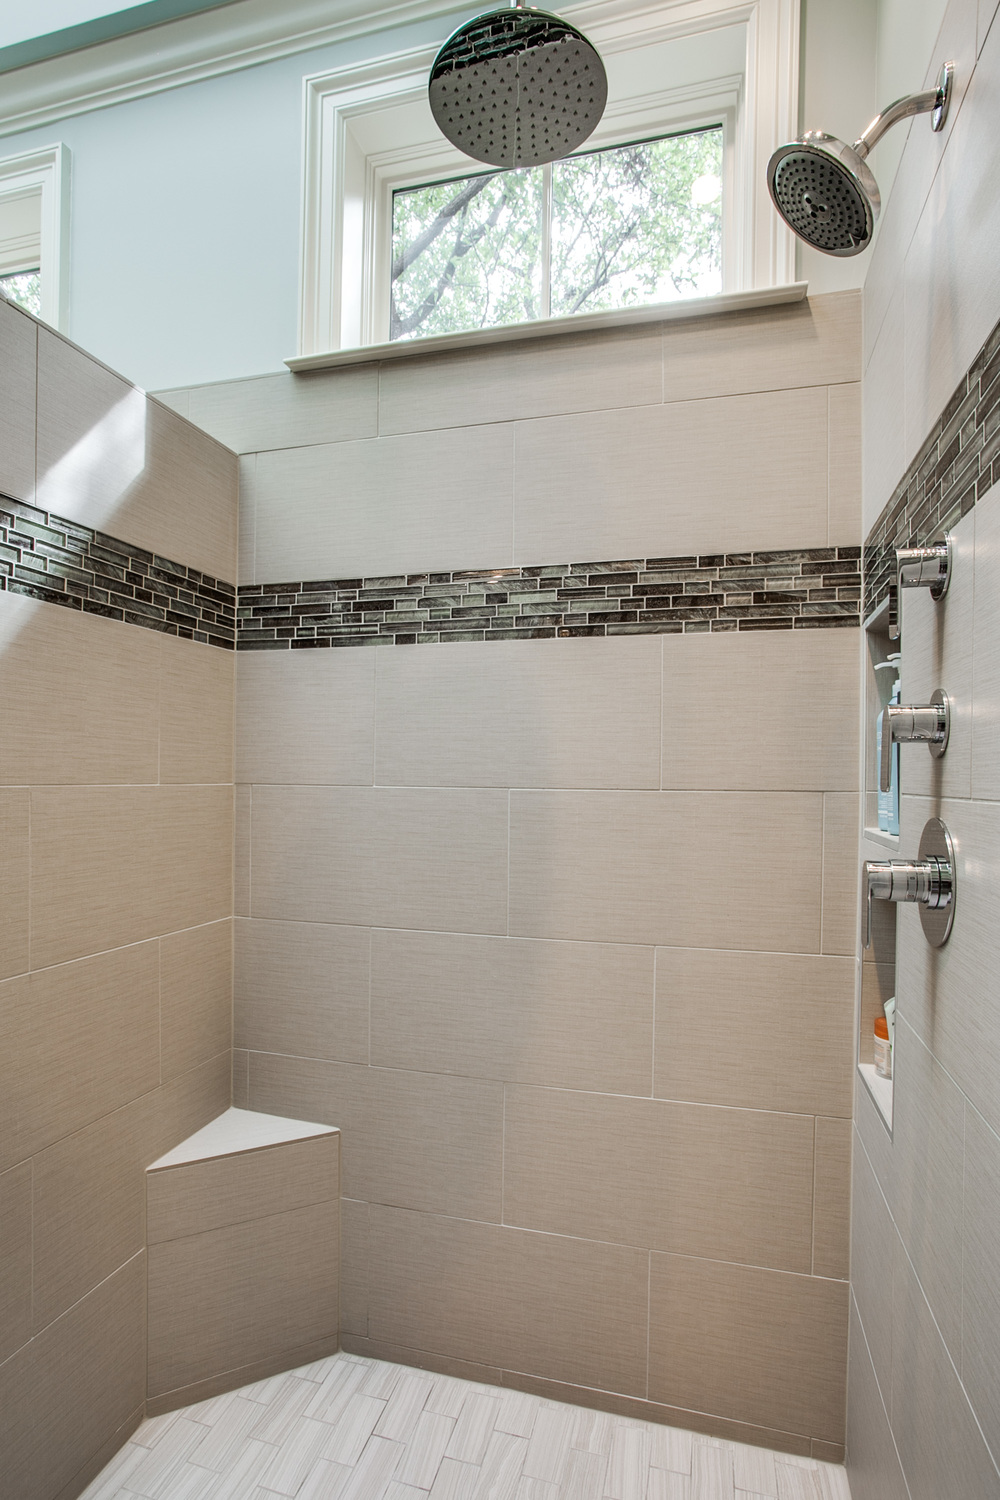 4683-belclaire-ave-highland-park-tx-High-Res-4.jpg